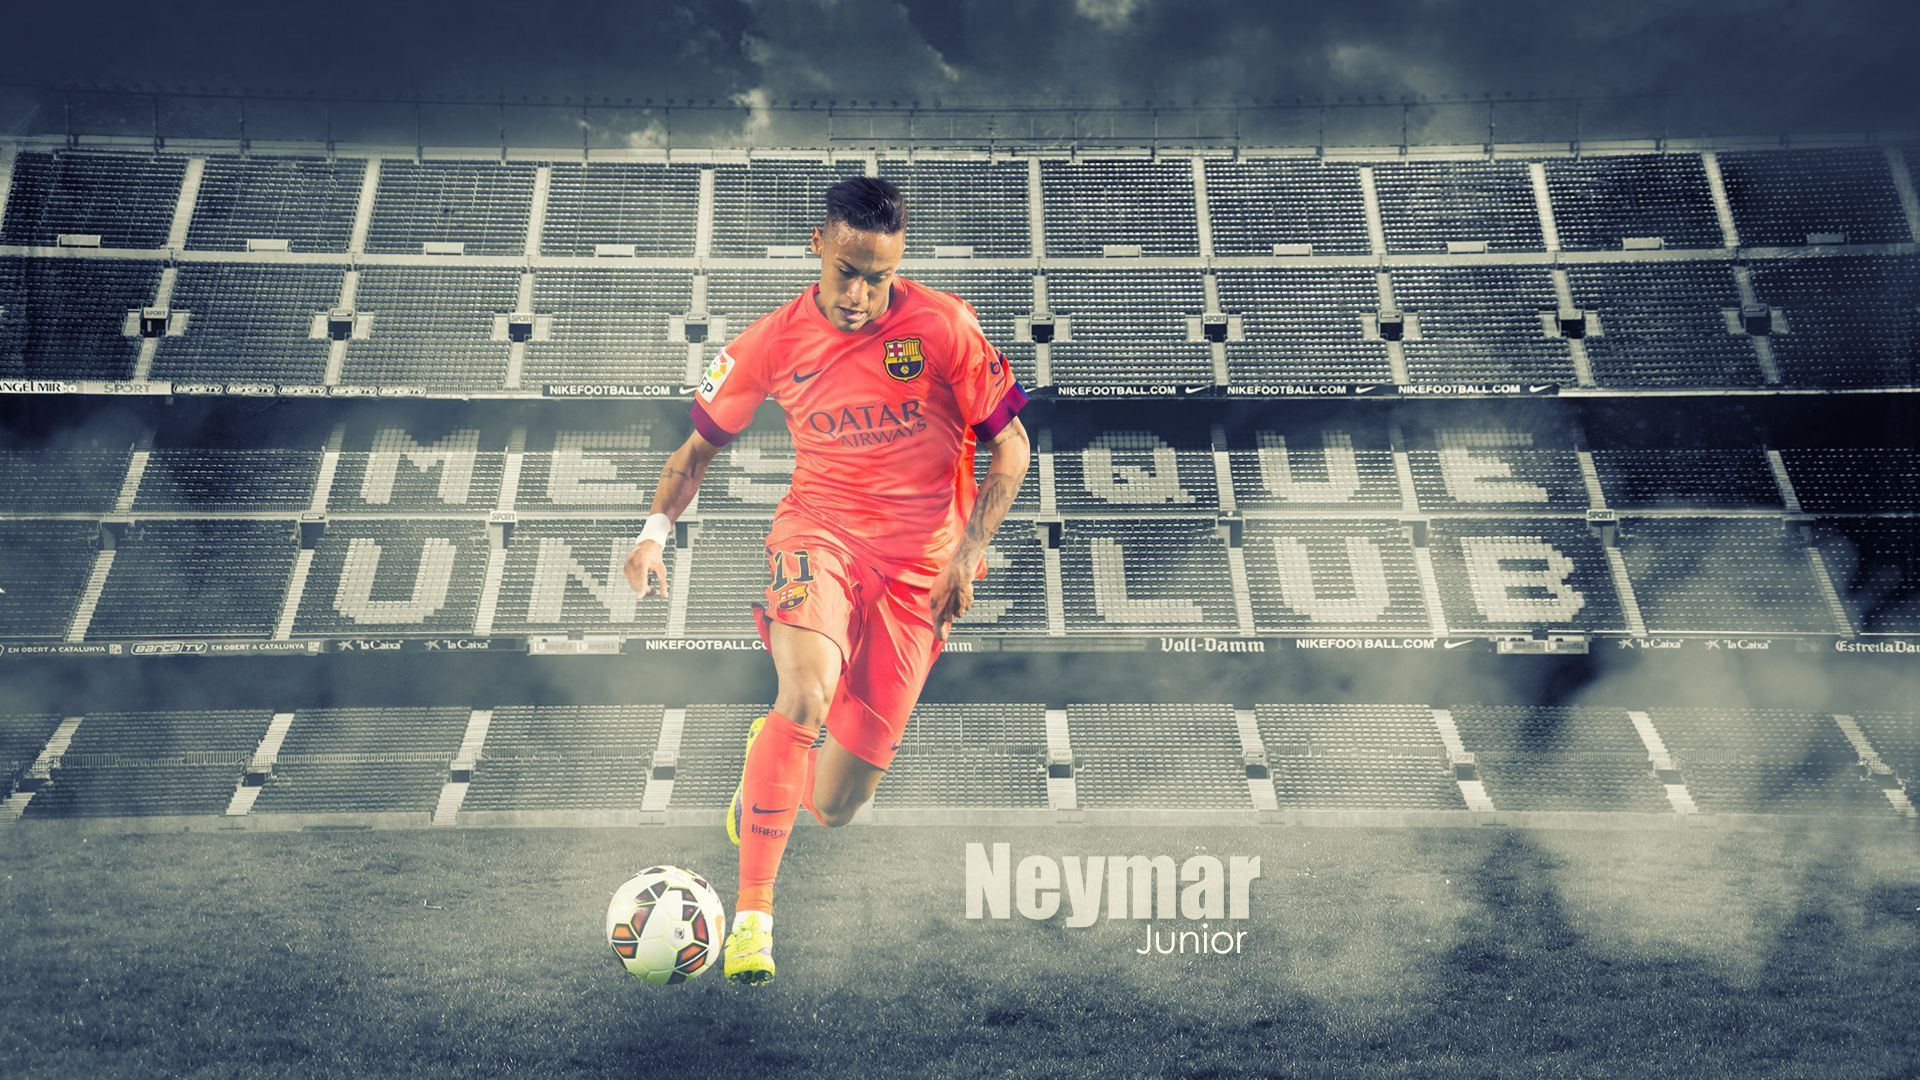 neymar-2016-wallpapers